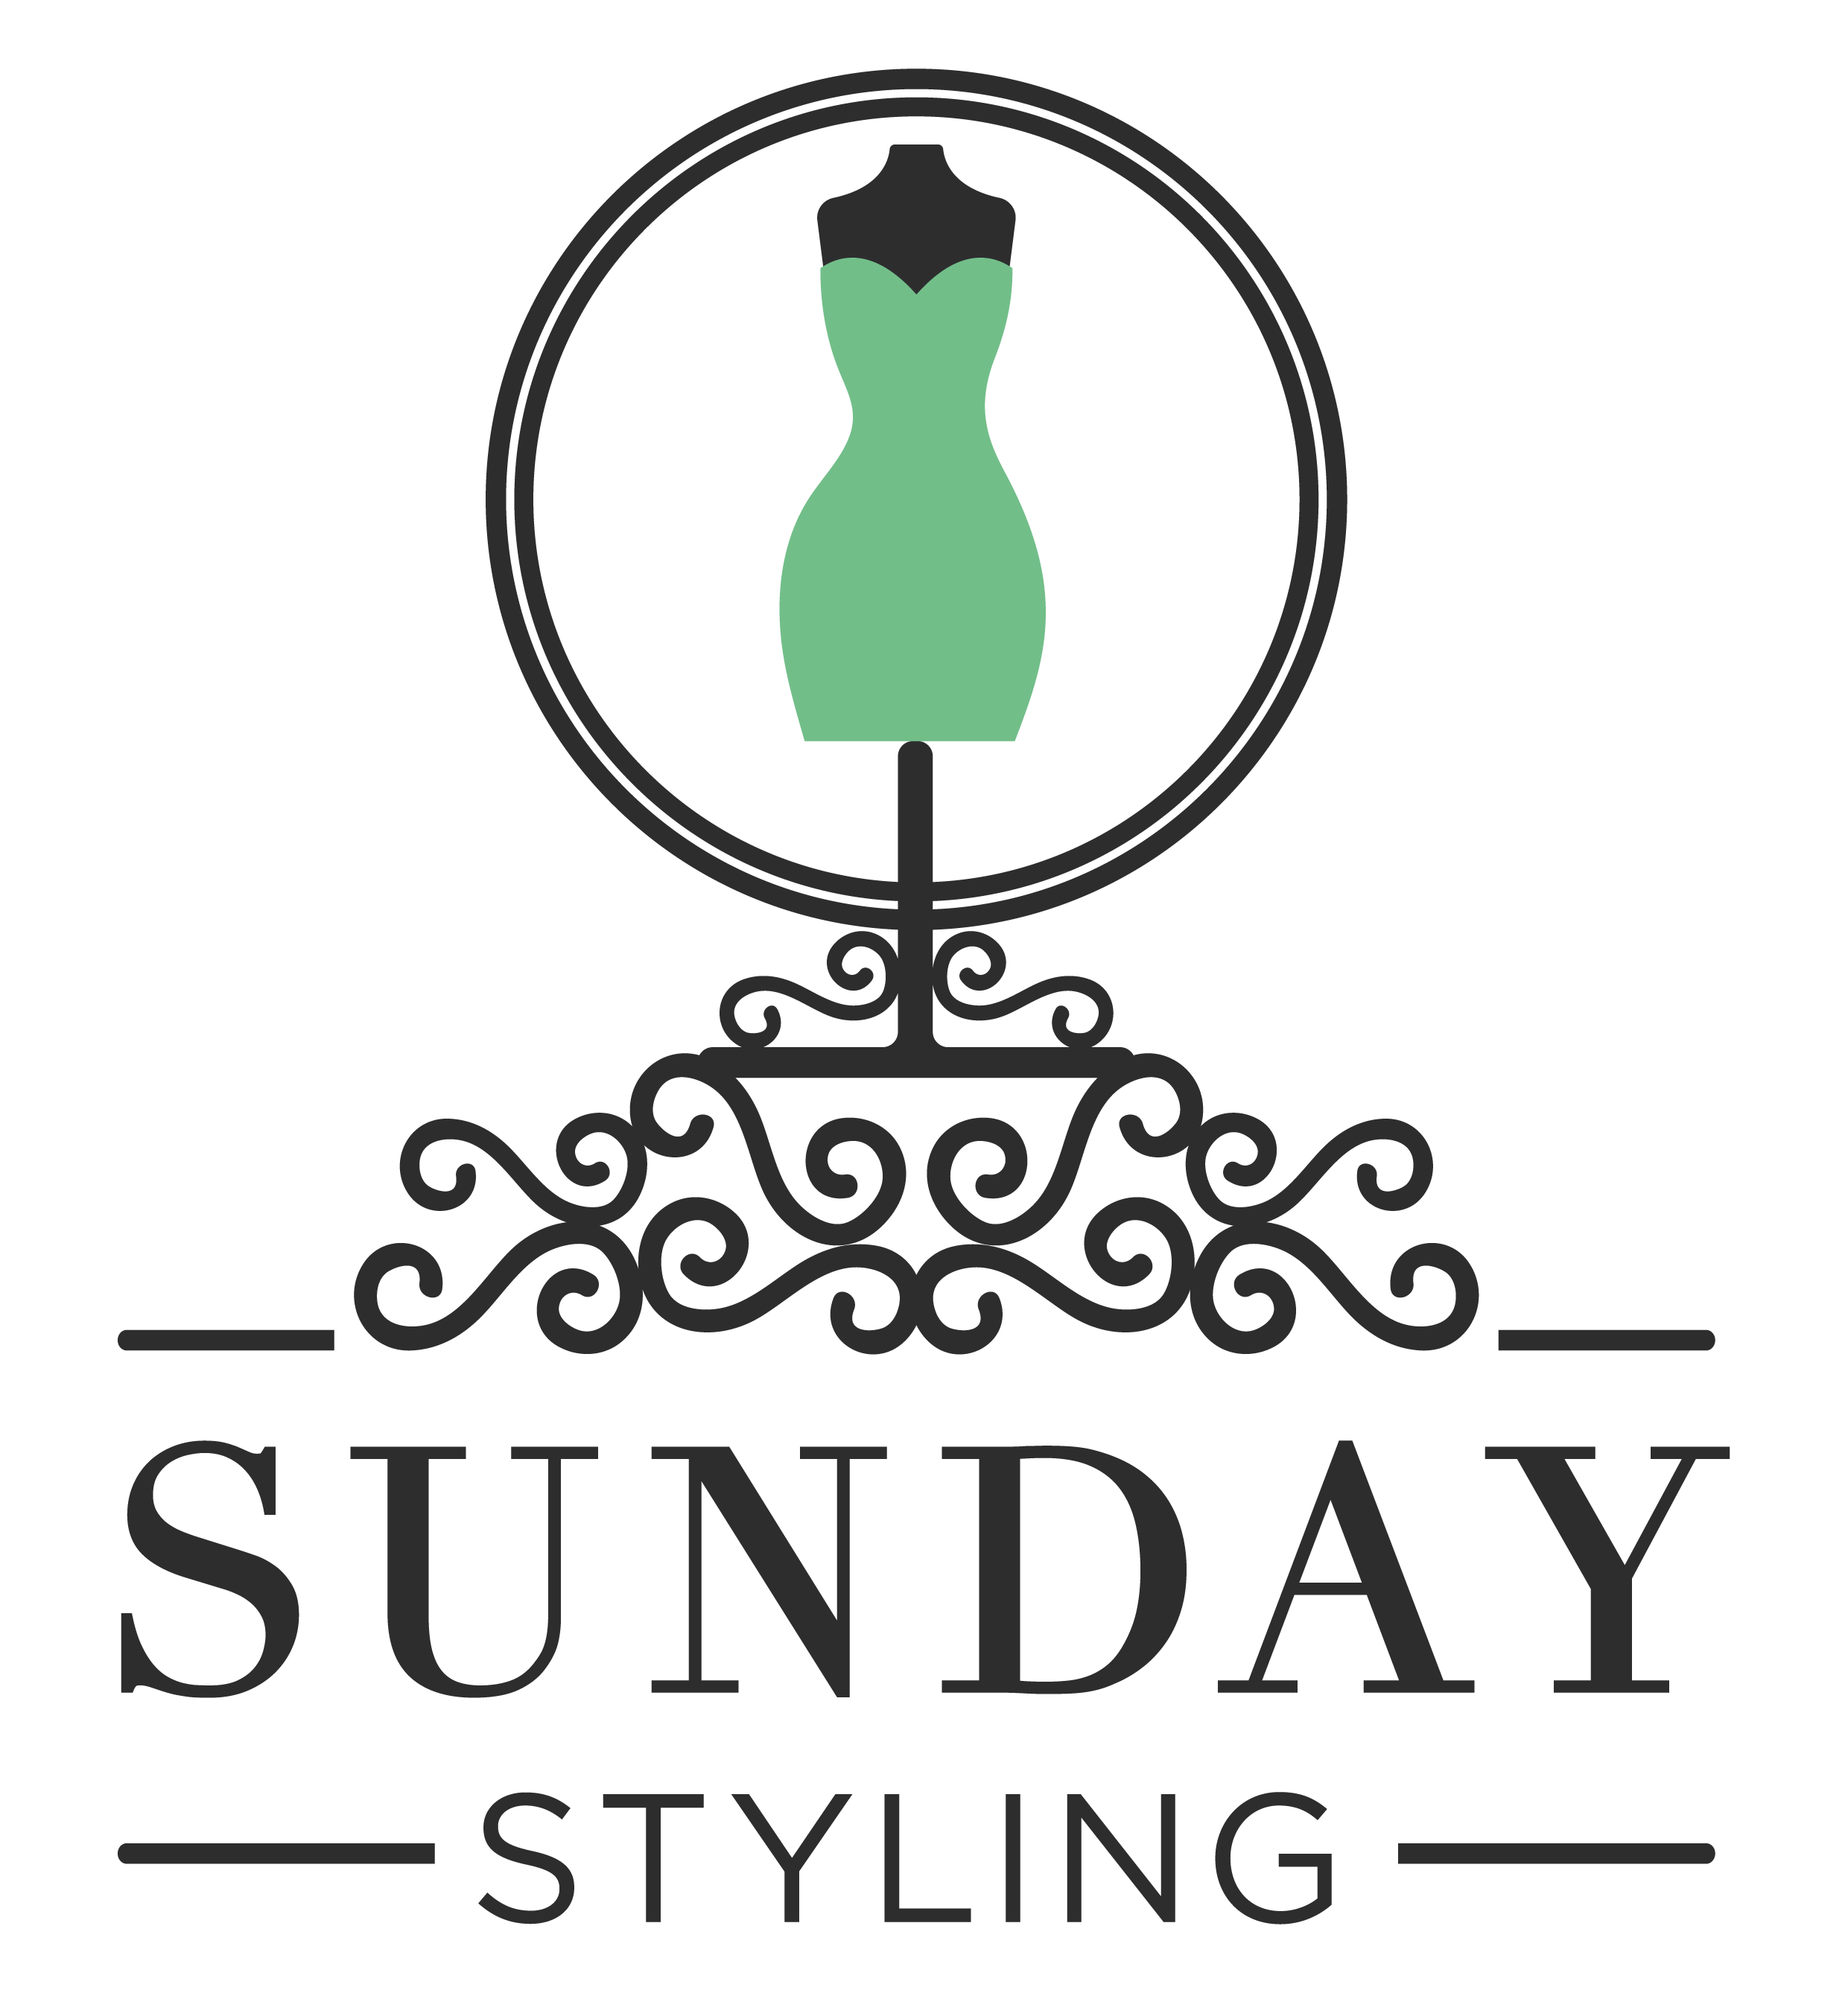 Mall clipart personal shopper. Sunday styling independent stylist